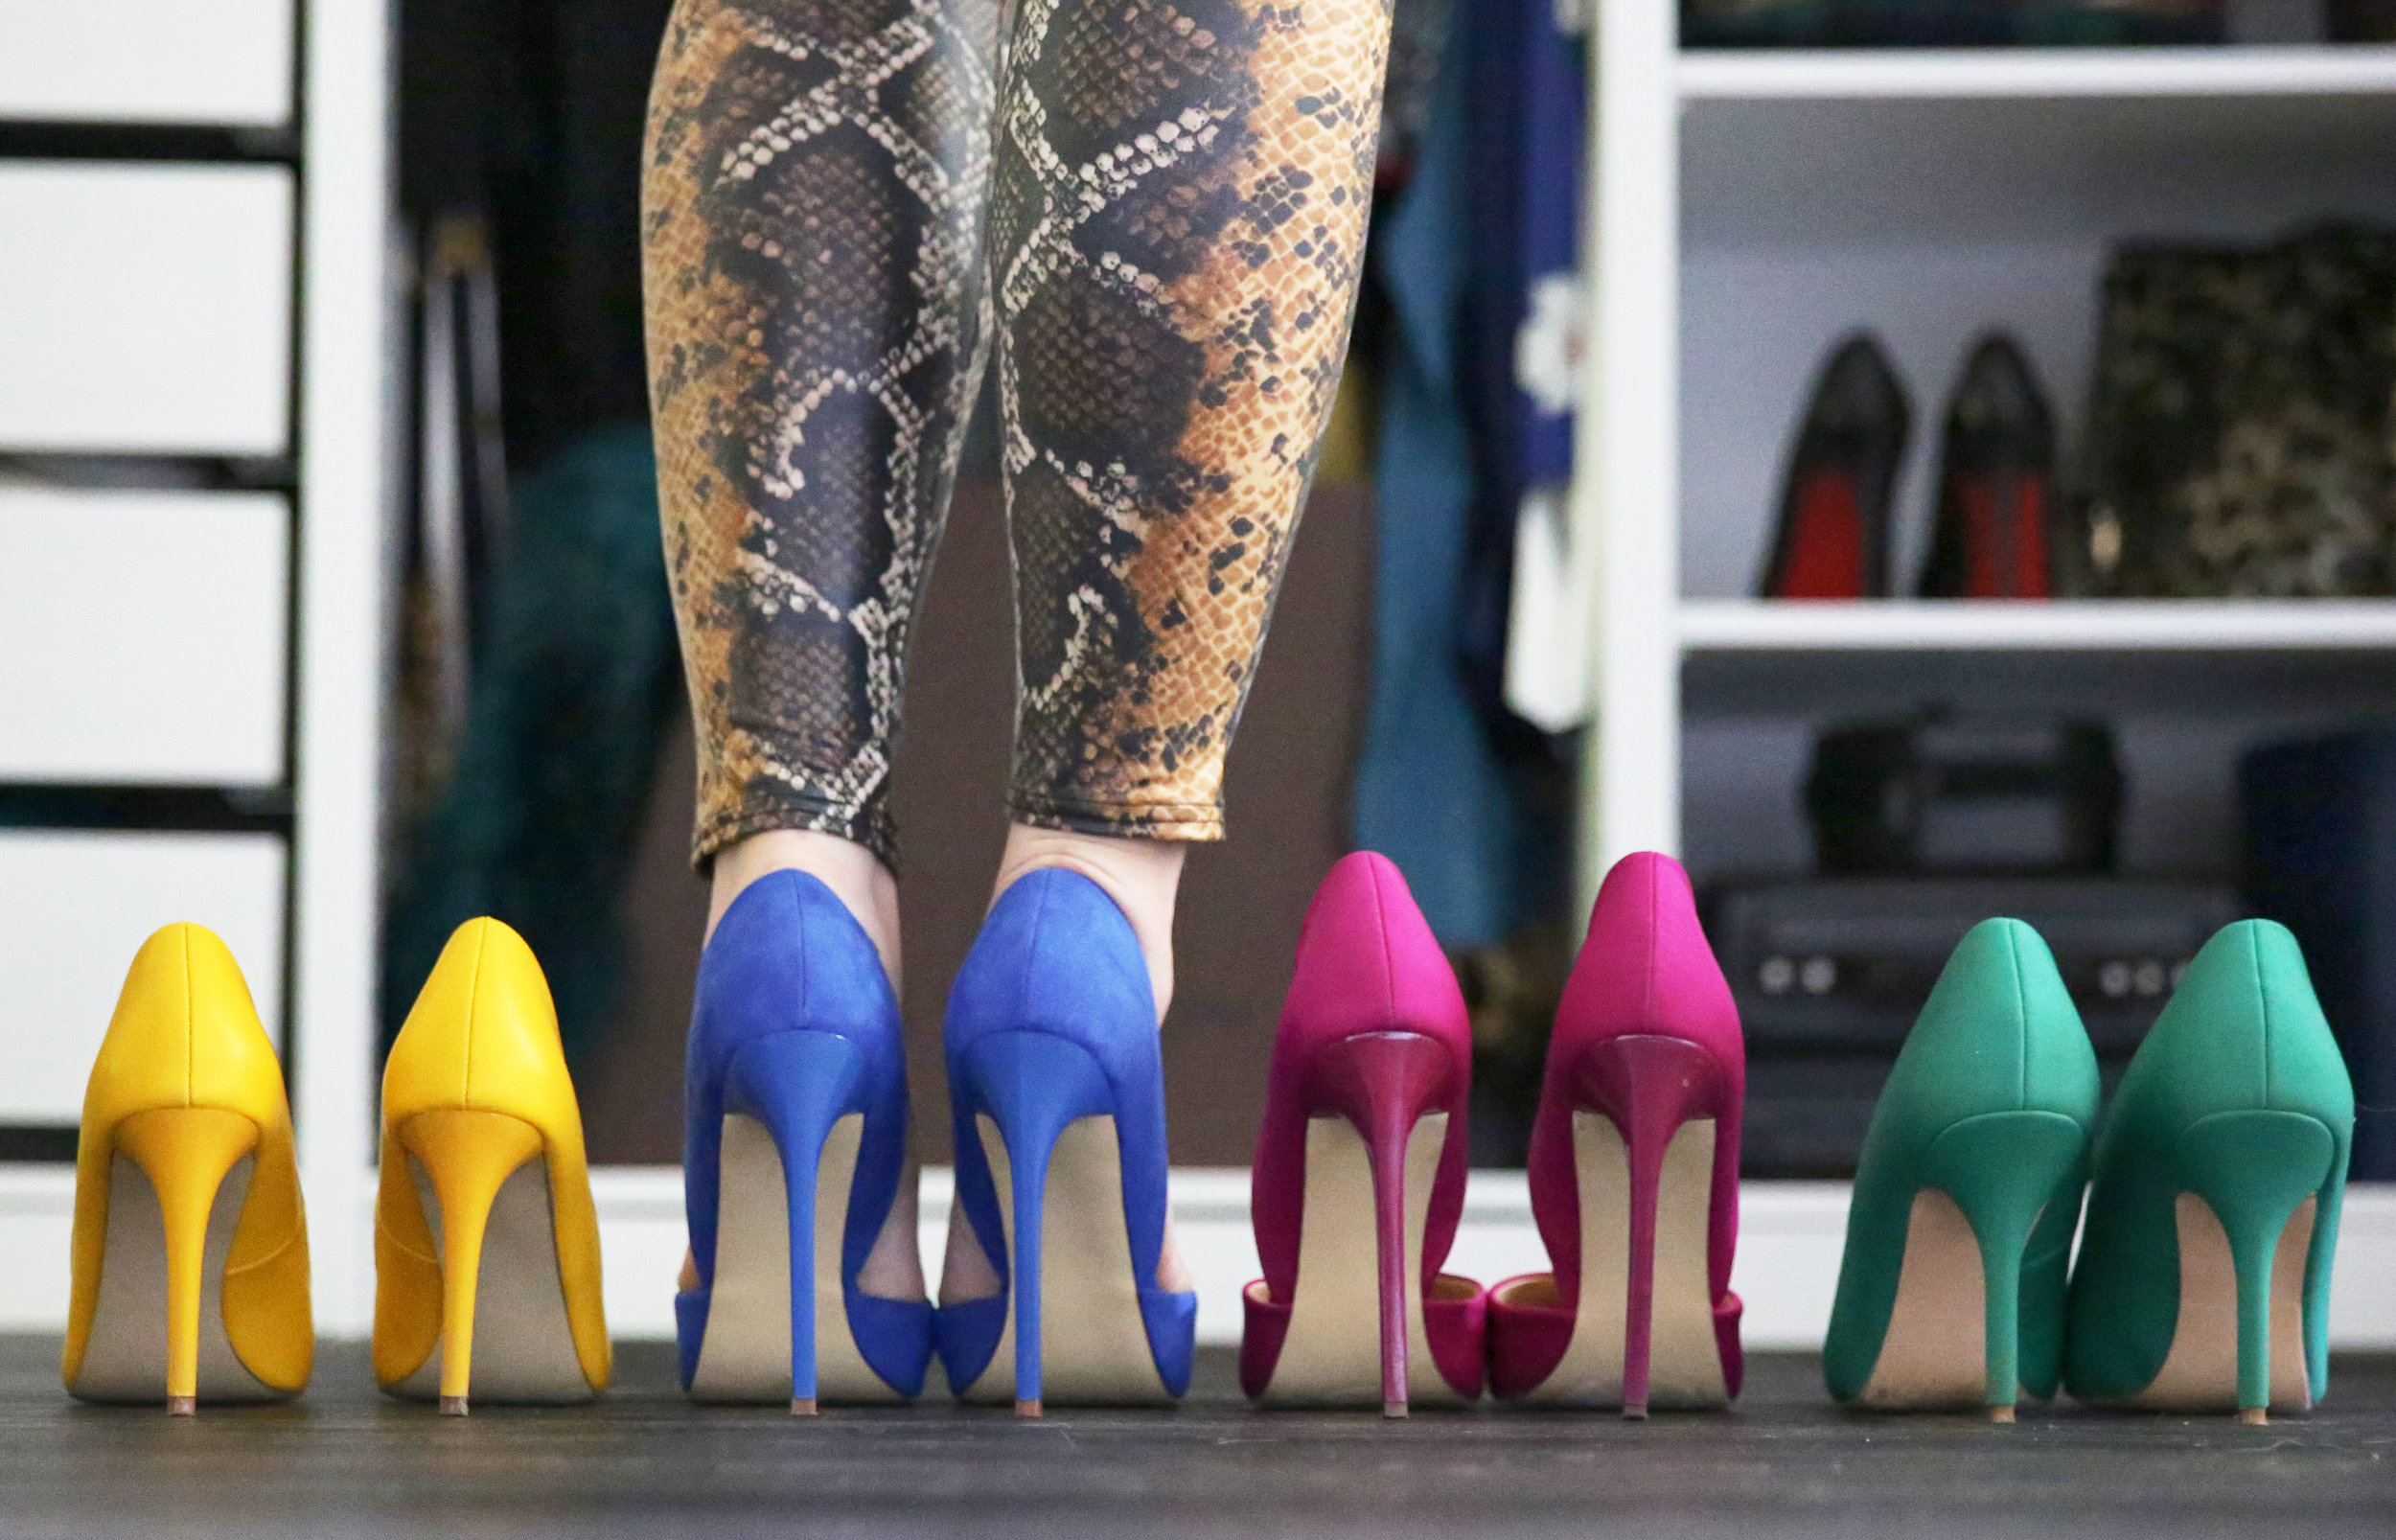 All of these shoes are from Just Fab.